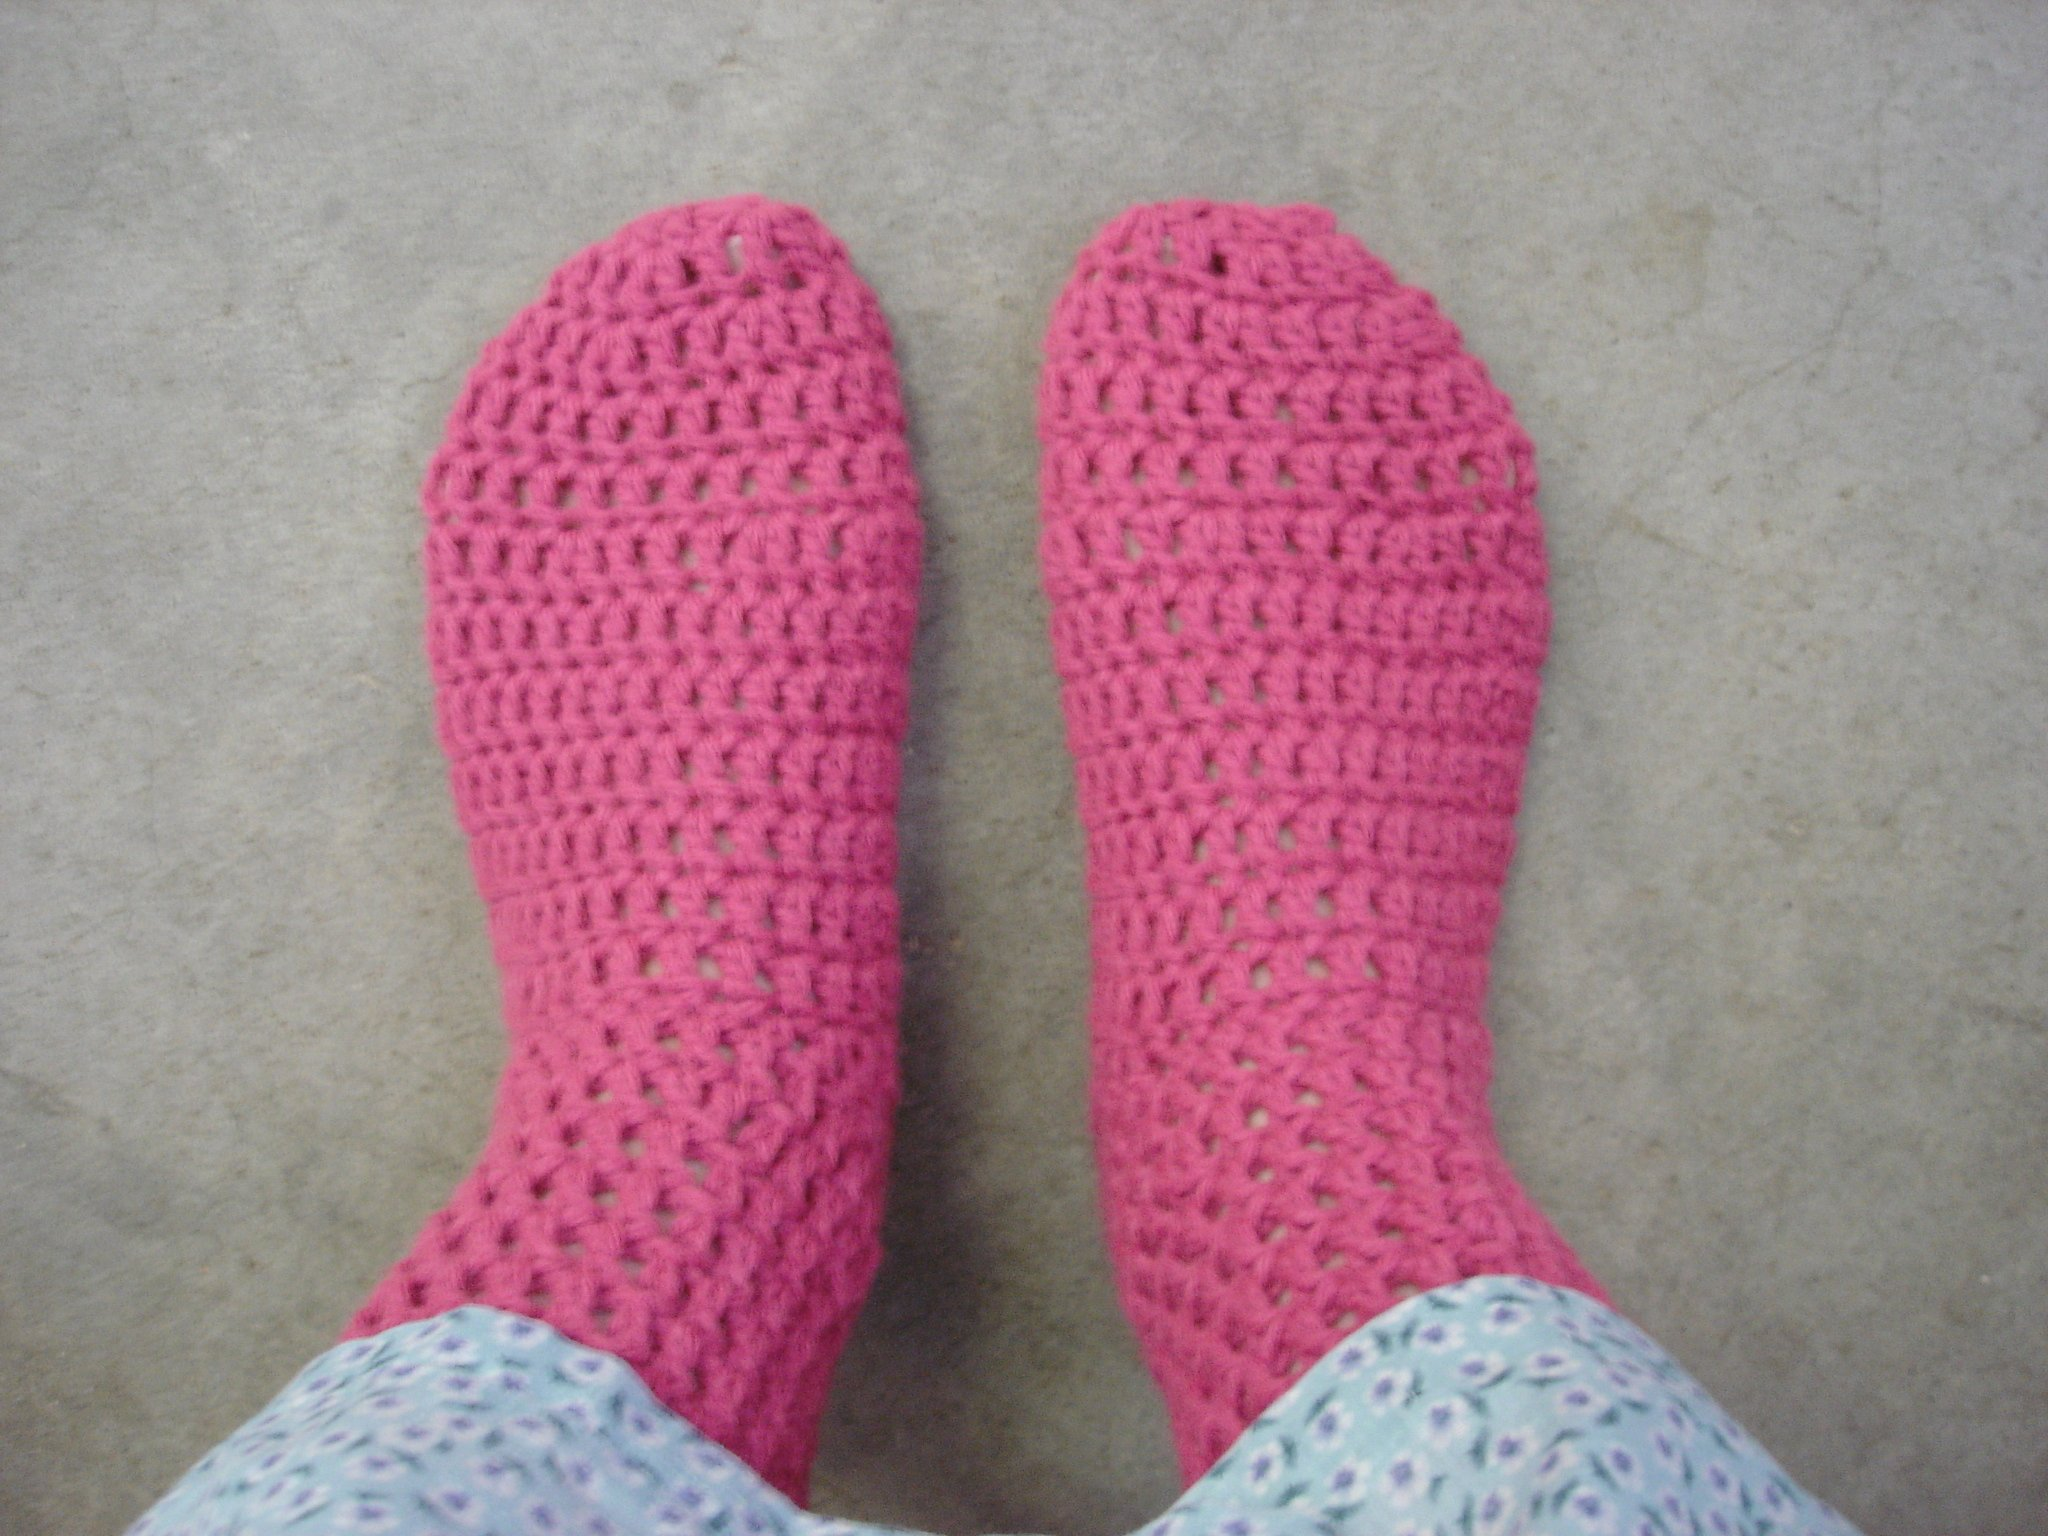 Crocheting Easy Patterns : 18 Crochet Sock Patterns Guide Patterns